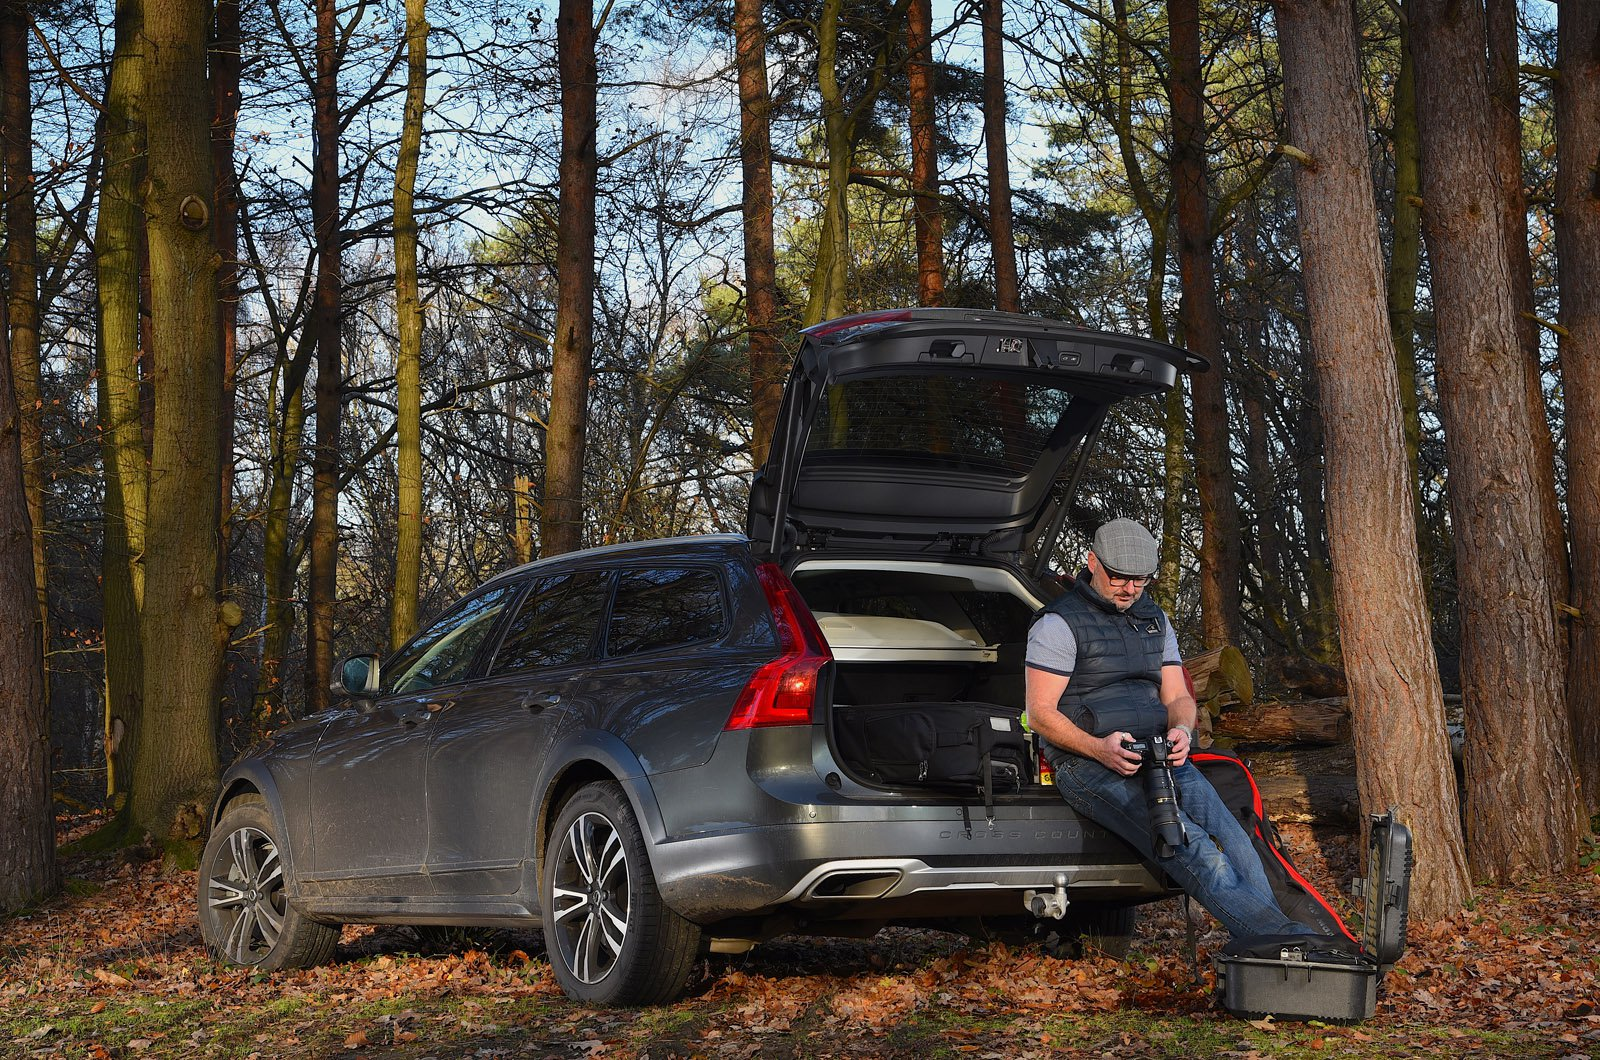 LT Volvo V90 Cross Country in the woods